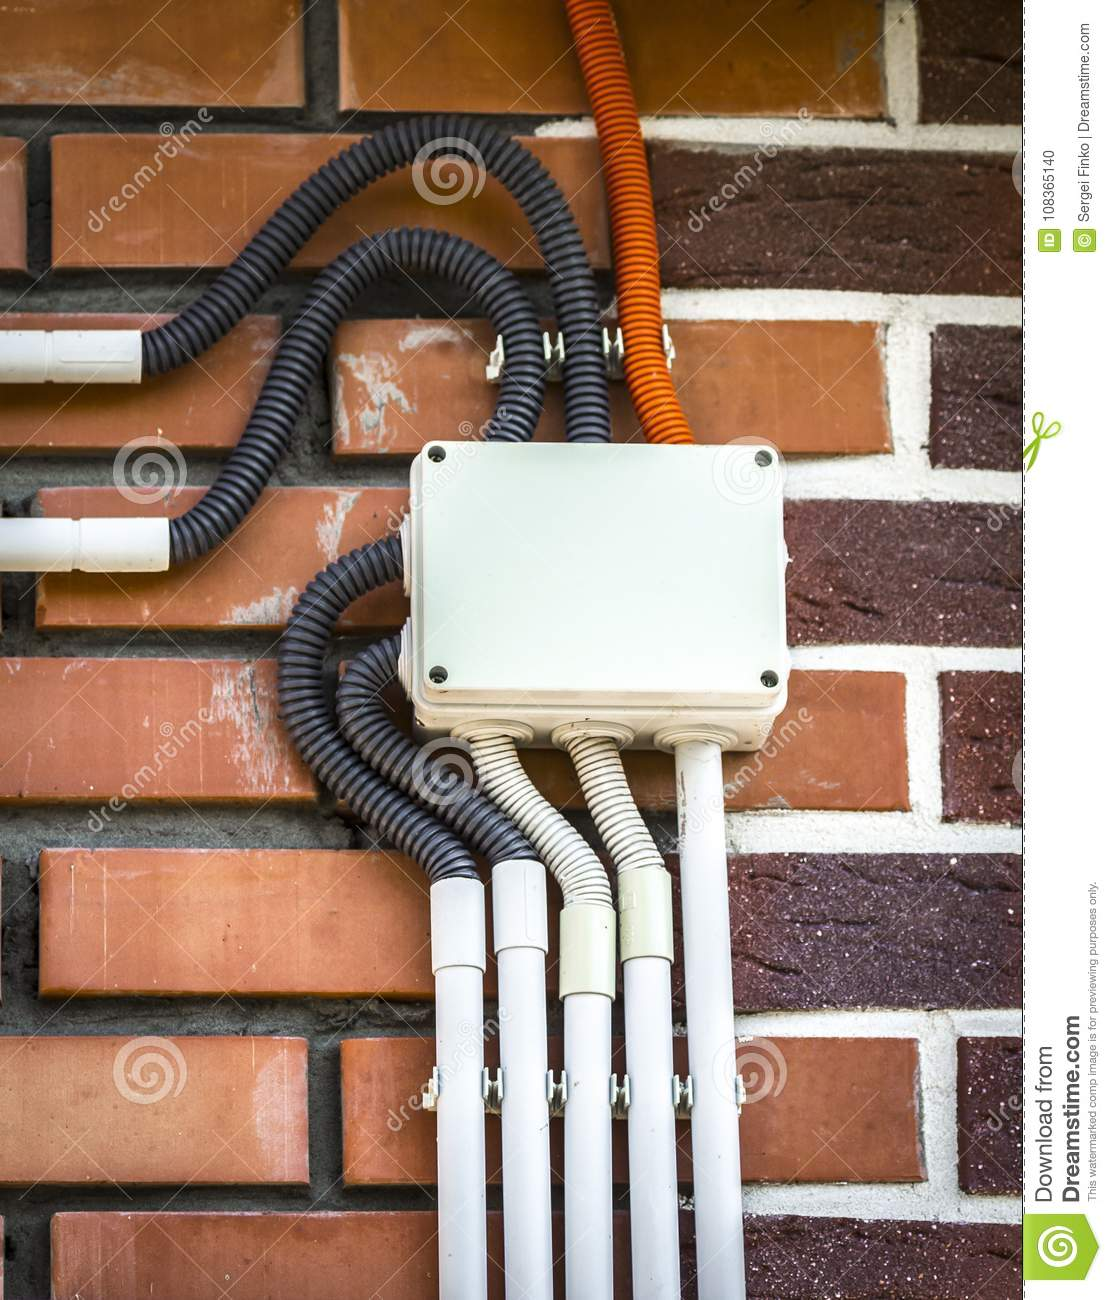 hight resolution of electrical wiring on the wall stock photo image of background surface mount electrical wiring to download surface mount electrical